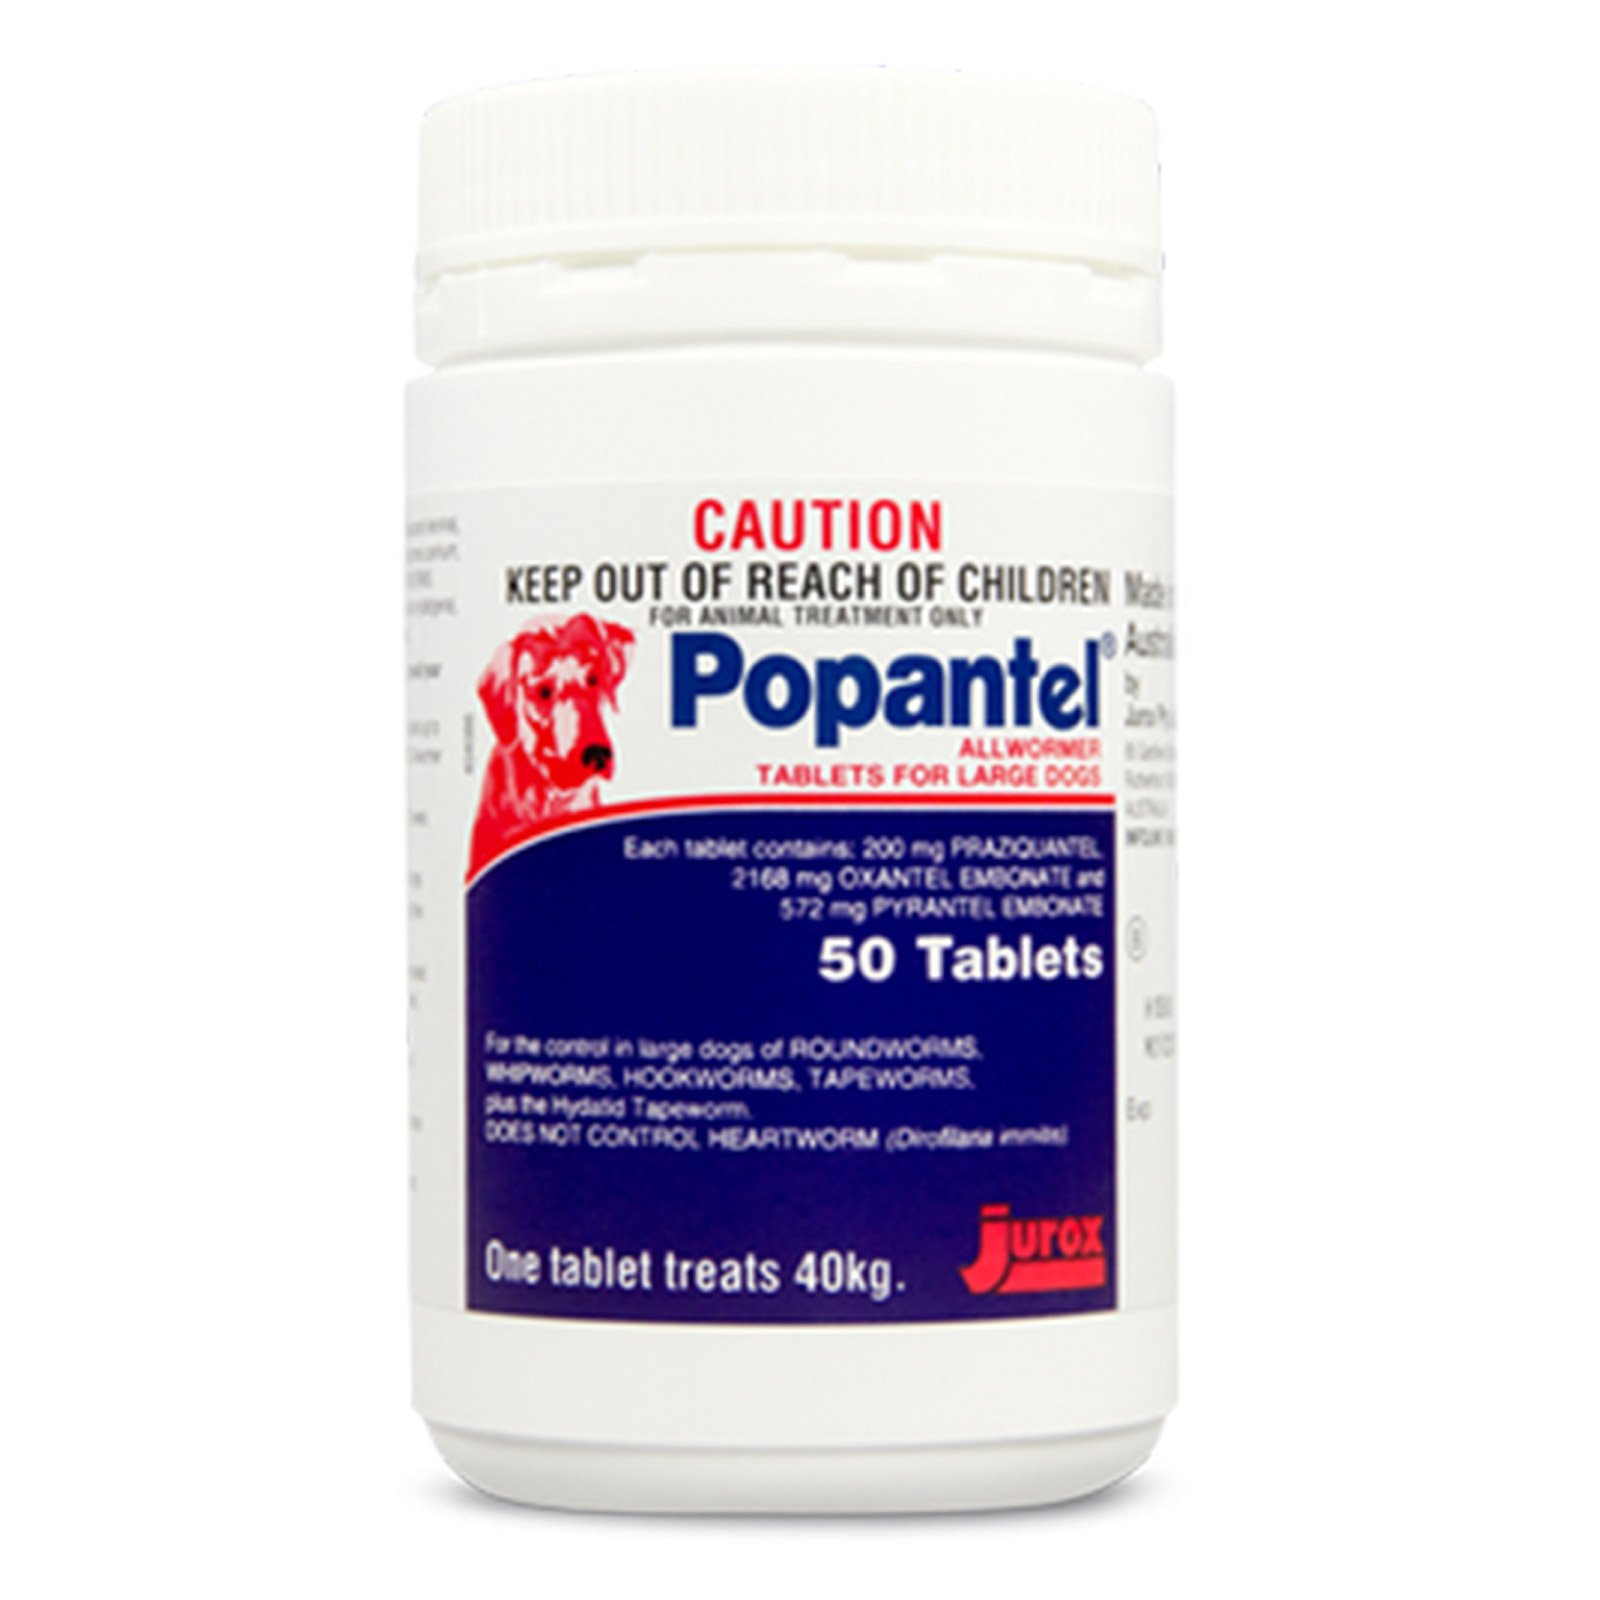 popantel-for-dogs-10-kg-40kg-4-tablets.jpg